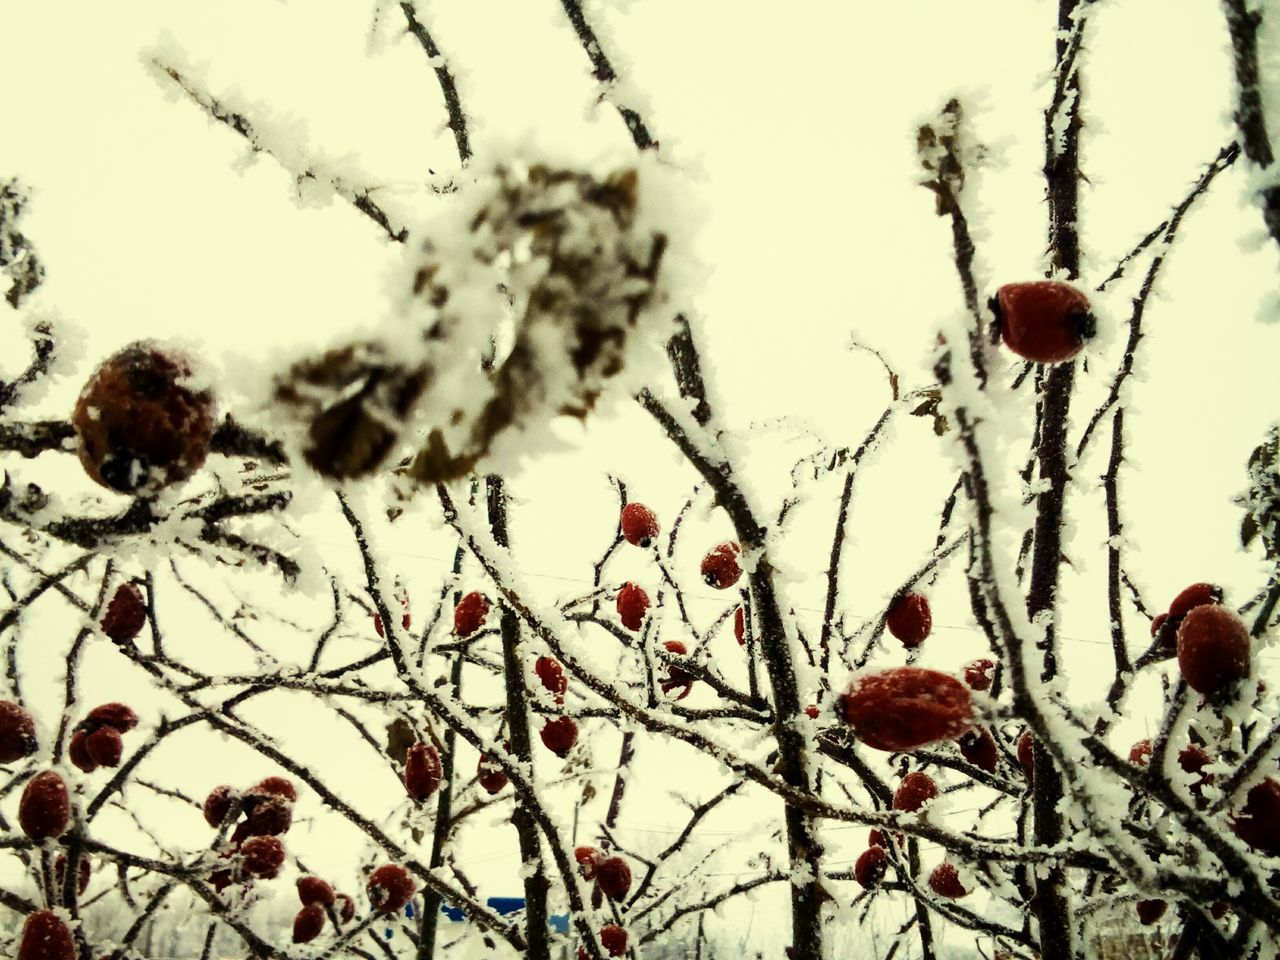 Winter Cold Temperature Snow Tree Nature Branch Outdoors Weather No People Growth Beauty In Nature Frost Frozen Day Twig Close-up Rose Hip Bare Tree Sky Frozen Snowing Snowflake Beauty In Nature Growth Nature